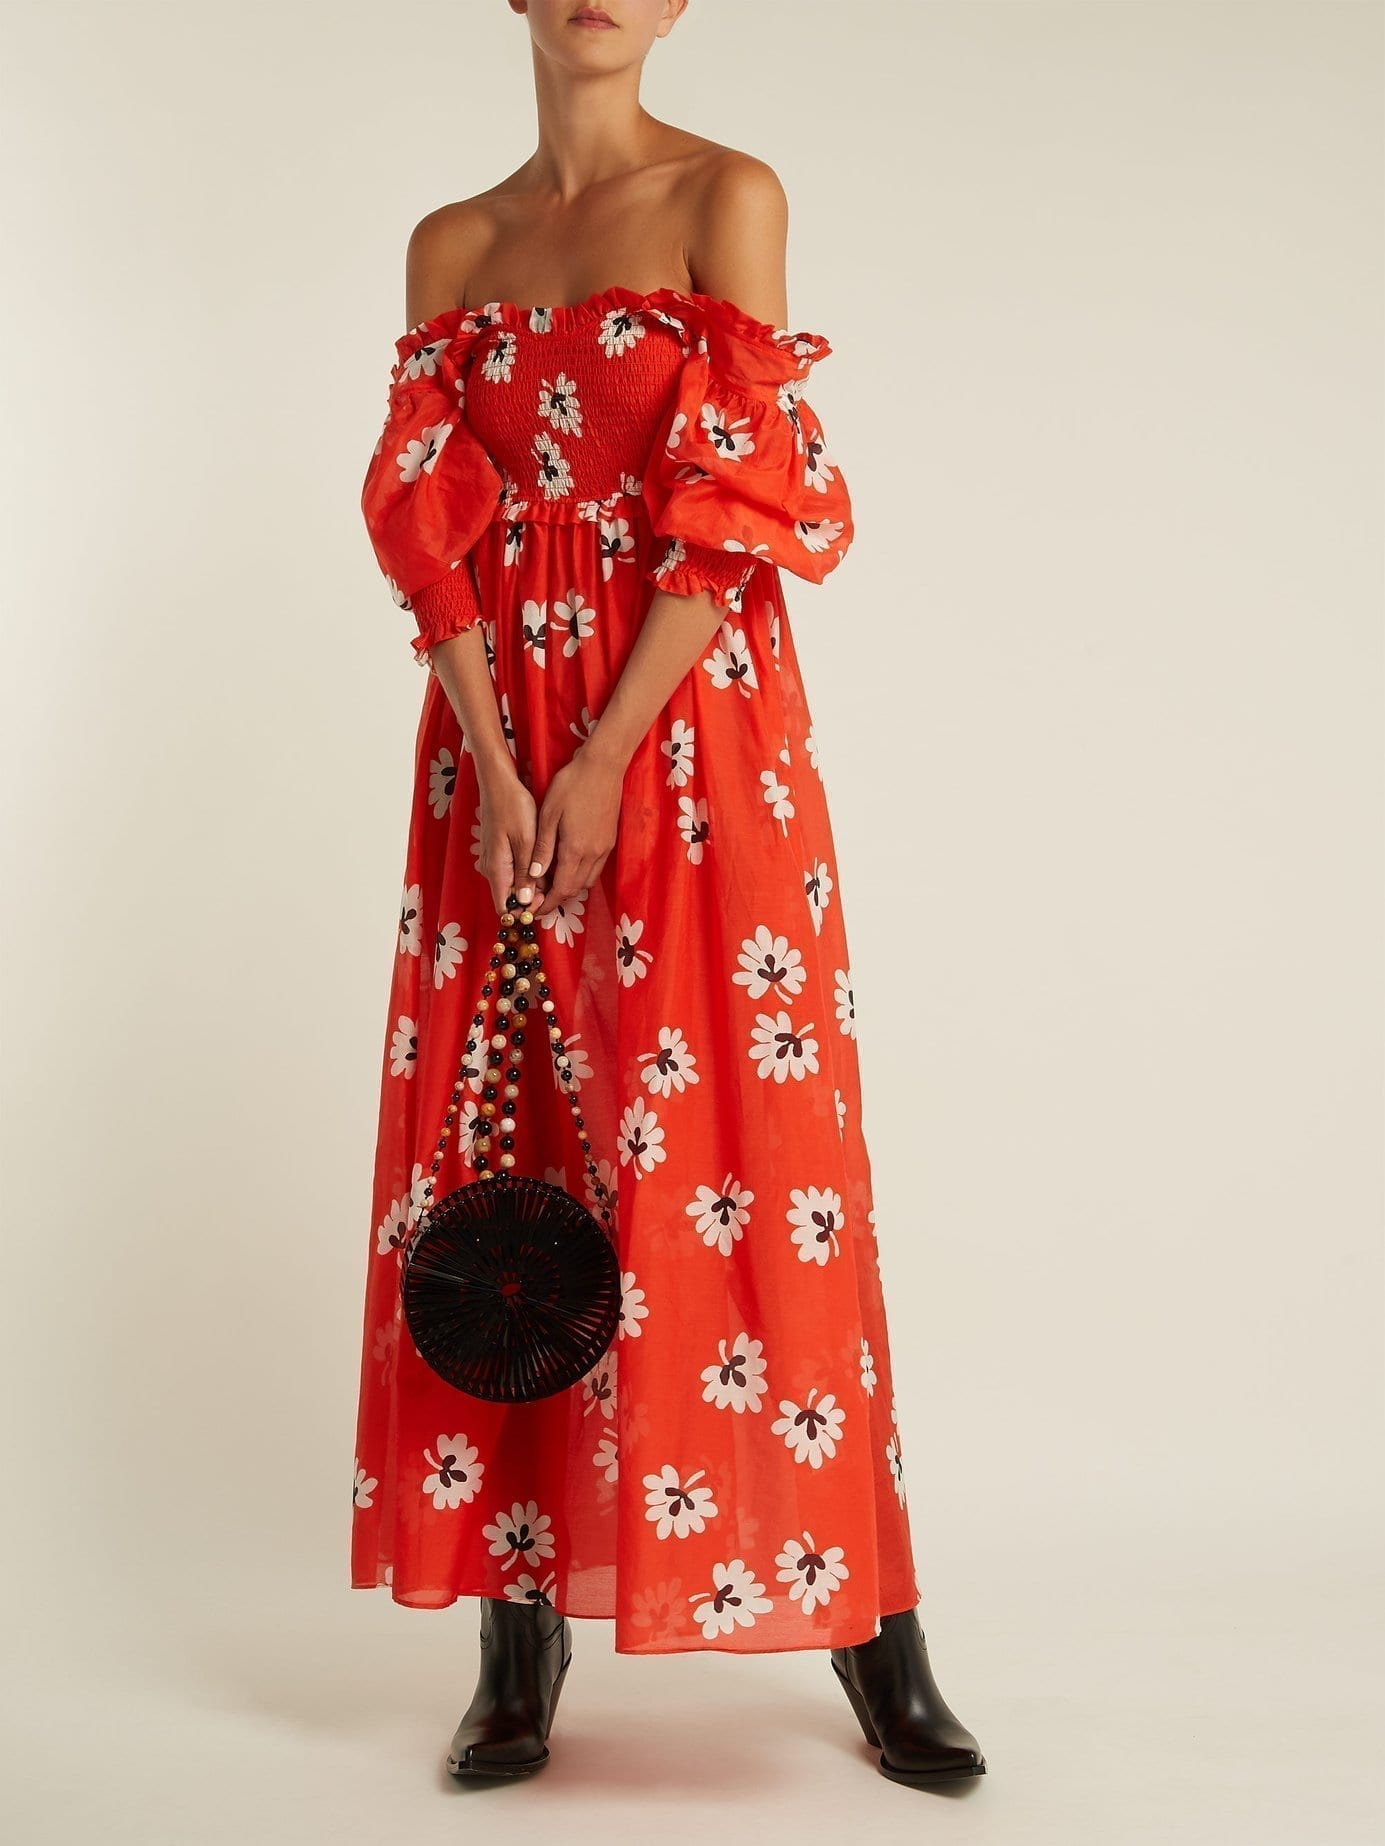 GANNI Linaria Red / Floral Printed Dress